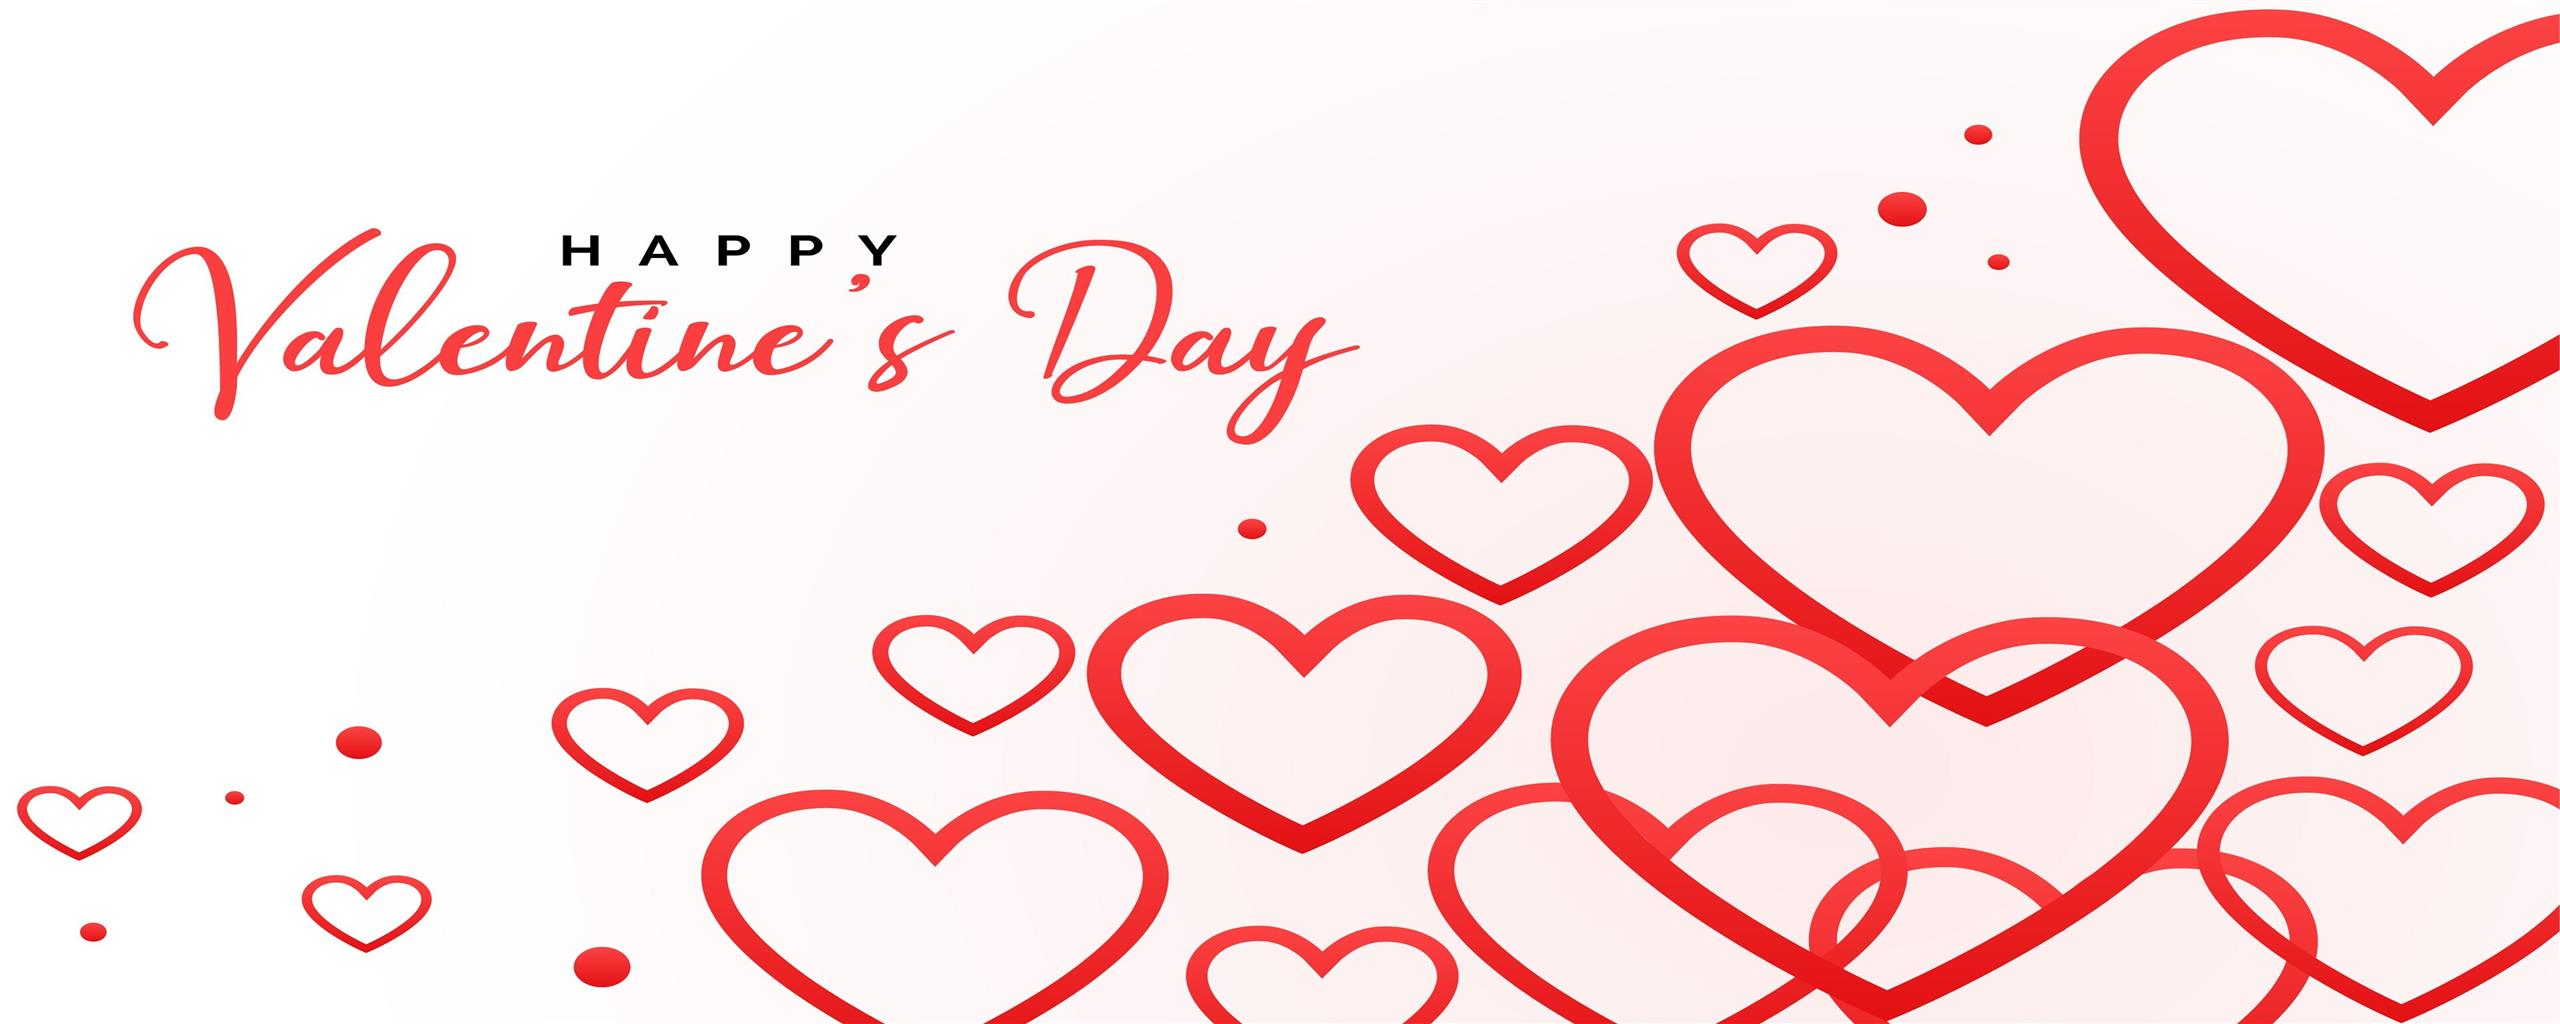 2560x1024 Valentine Day Photo with Red Heart Wallpaper